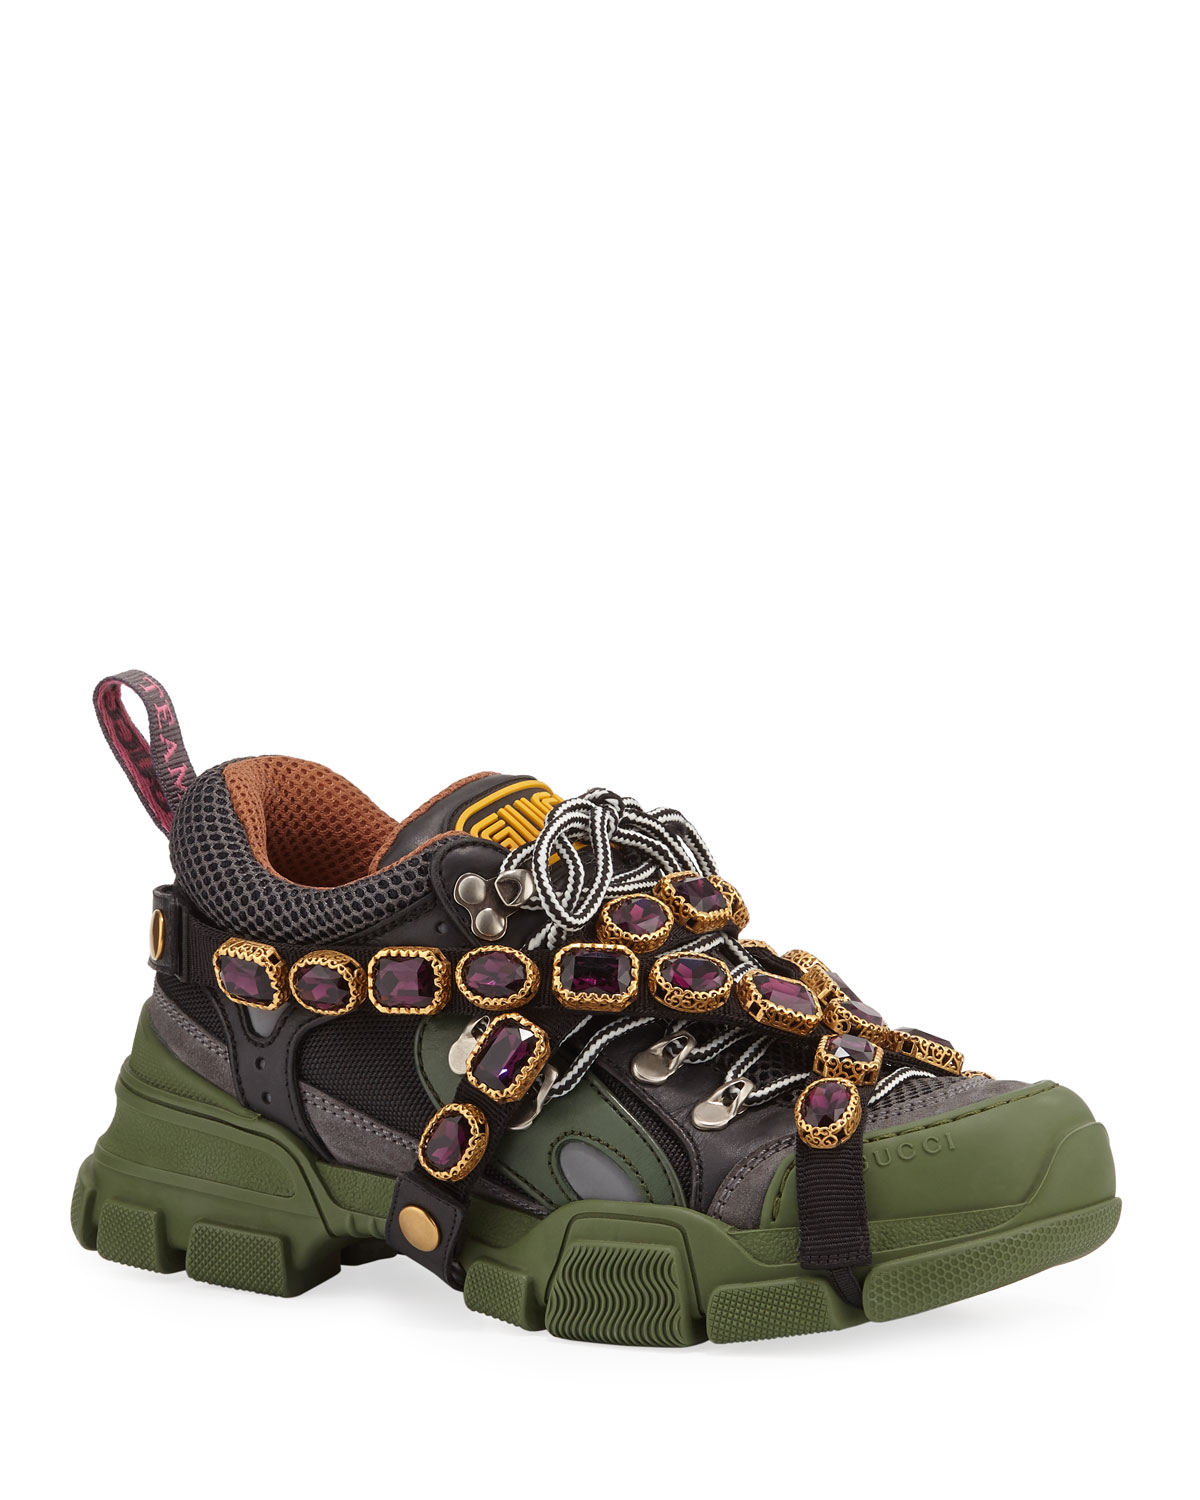 392ef414651 Gucci Flashtrek Hiker Sneaker With Chain Strap